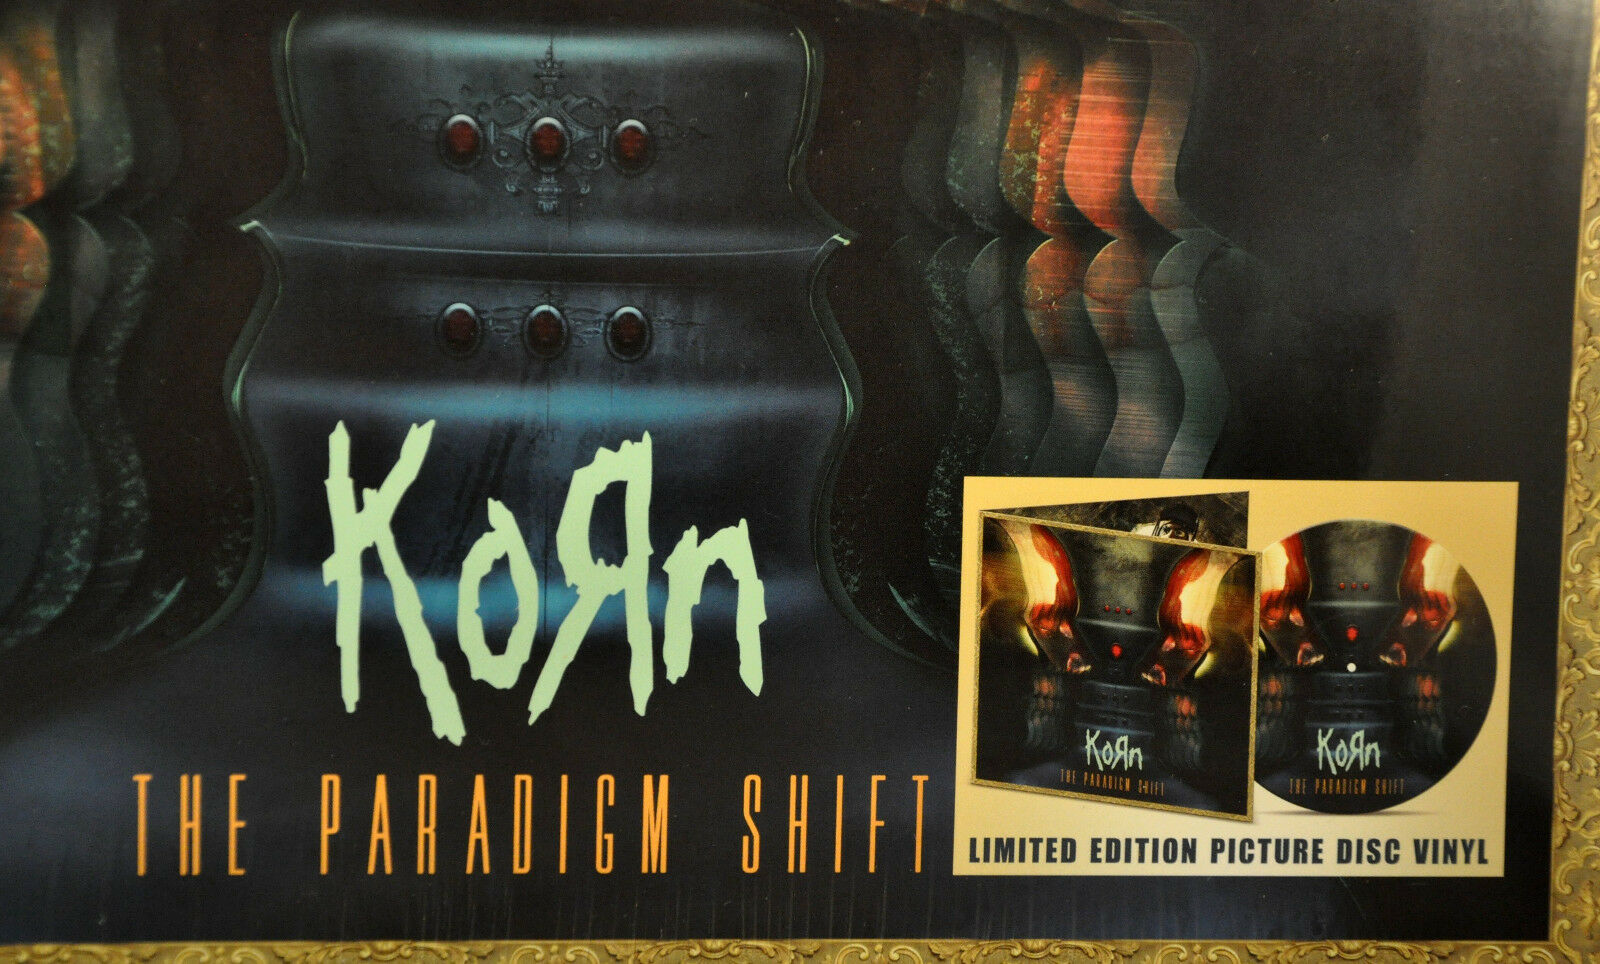 Korn The Paradigm Shift Vinyl 2x LP Picture Disc RSD Black Friday